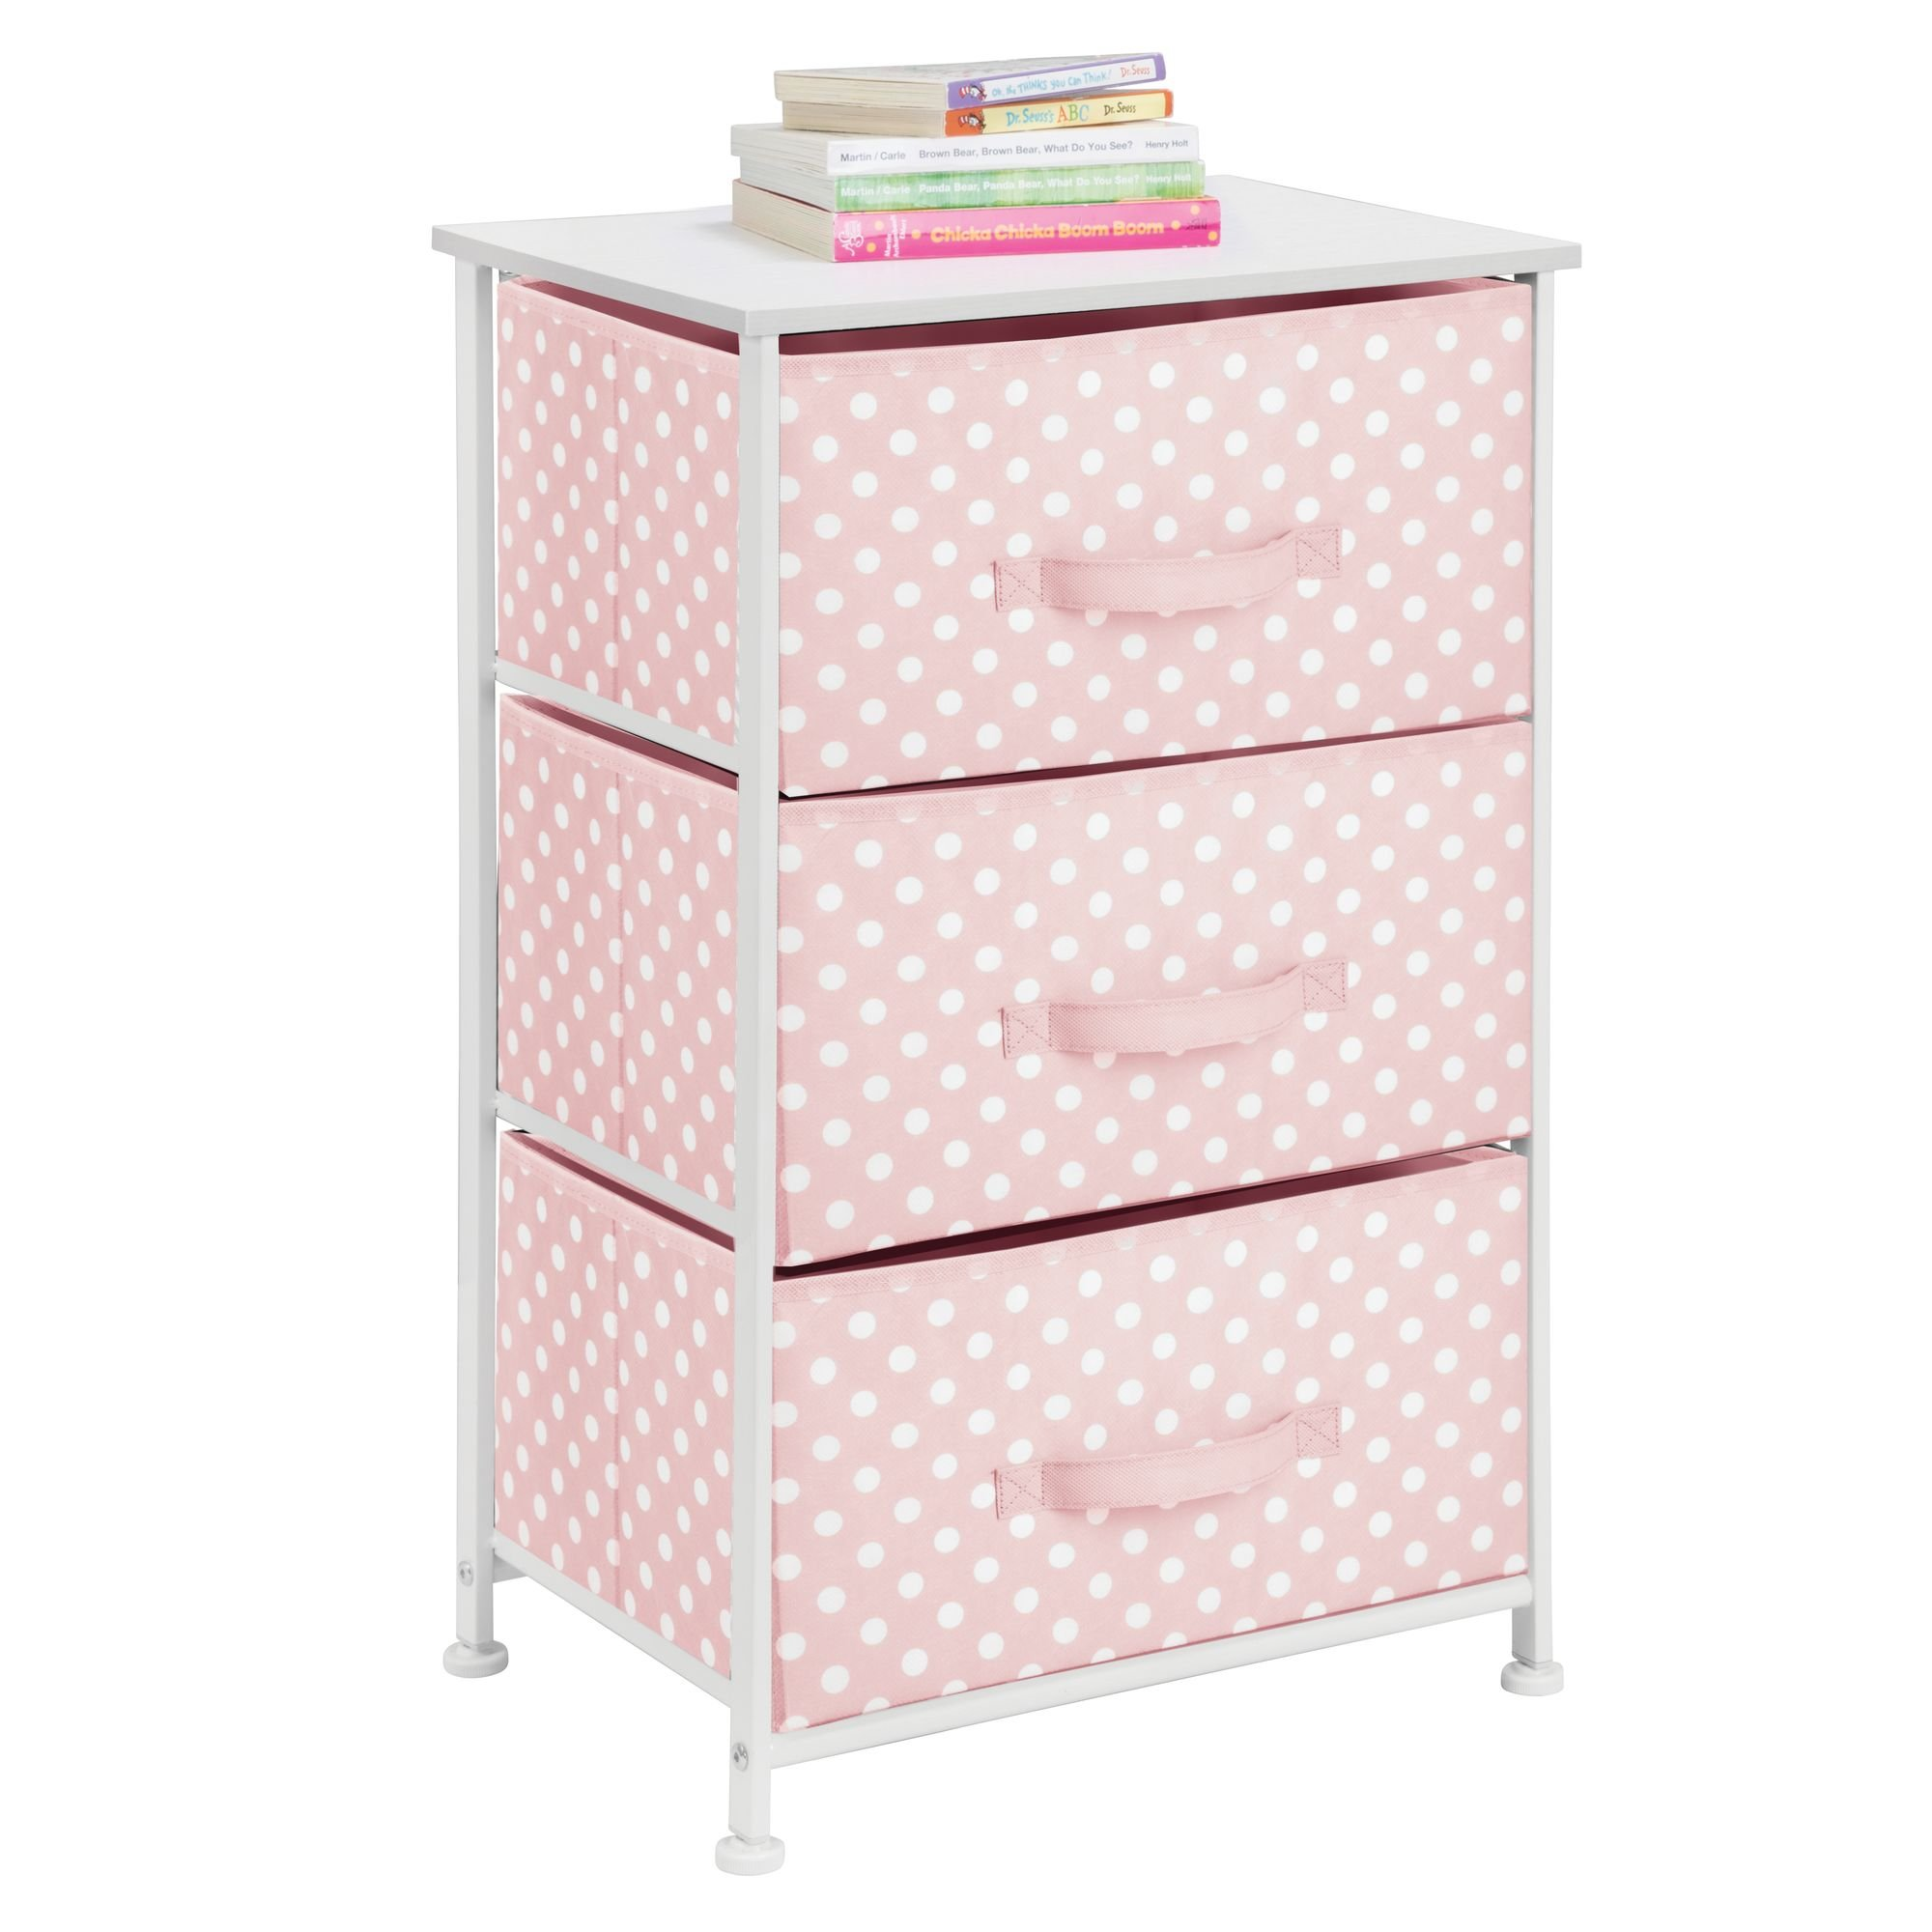 mDesign 3-Drawer Vertical Dresser Storage Tower - Sturdy Steel Frame, Wood Top and Easy Pull Fabric Bins - Multi-Bin Organizer Unit for Child/Kids Bedroom or Nursery - Light Pink with White Polka Dots